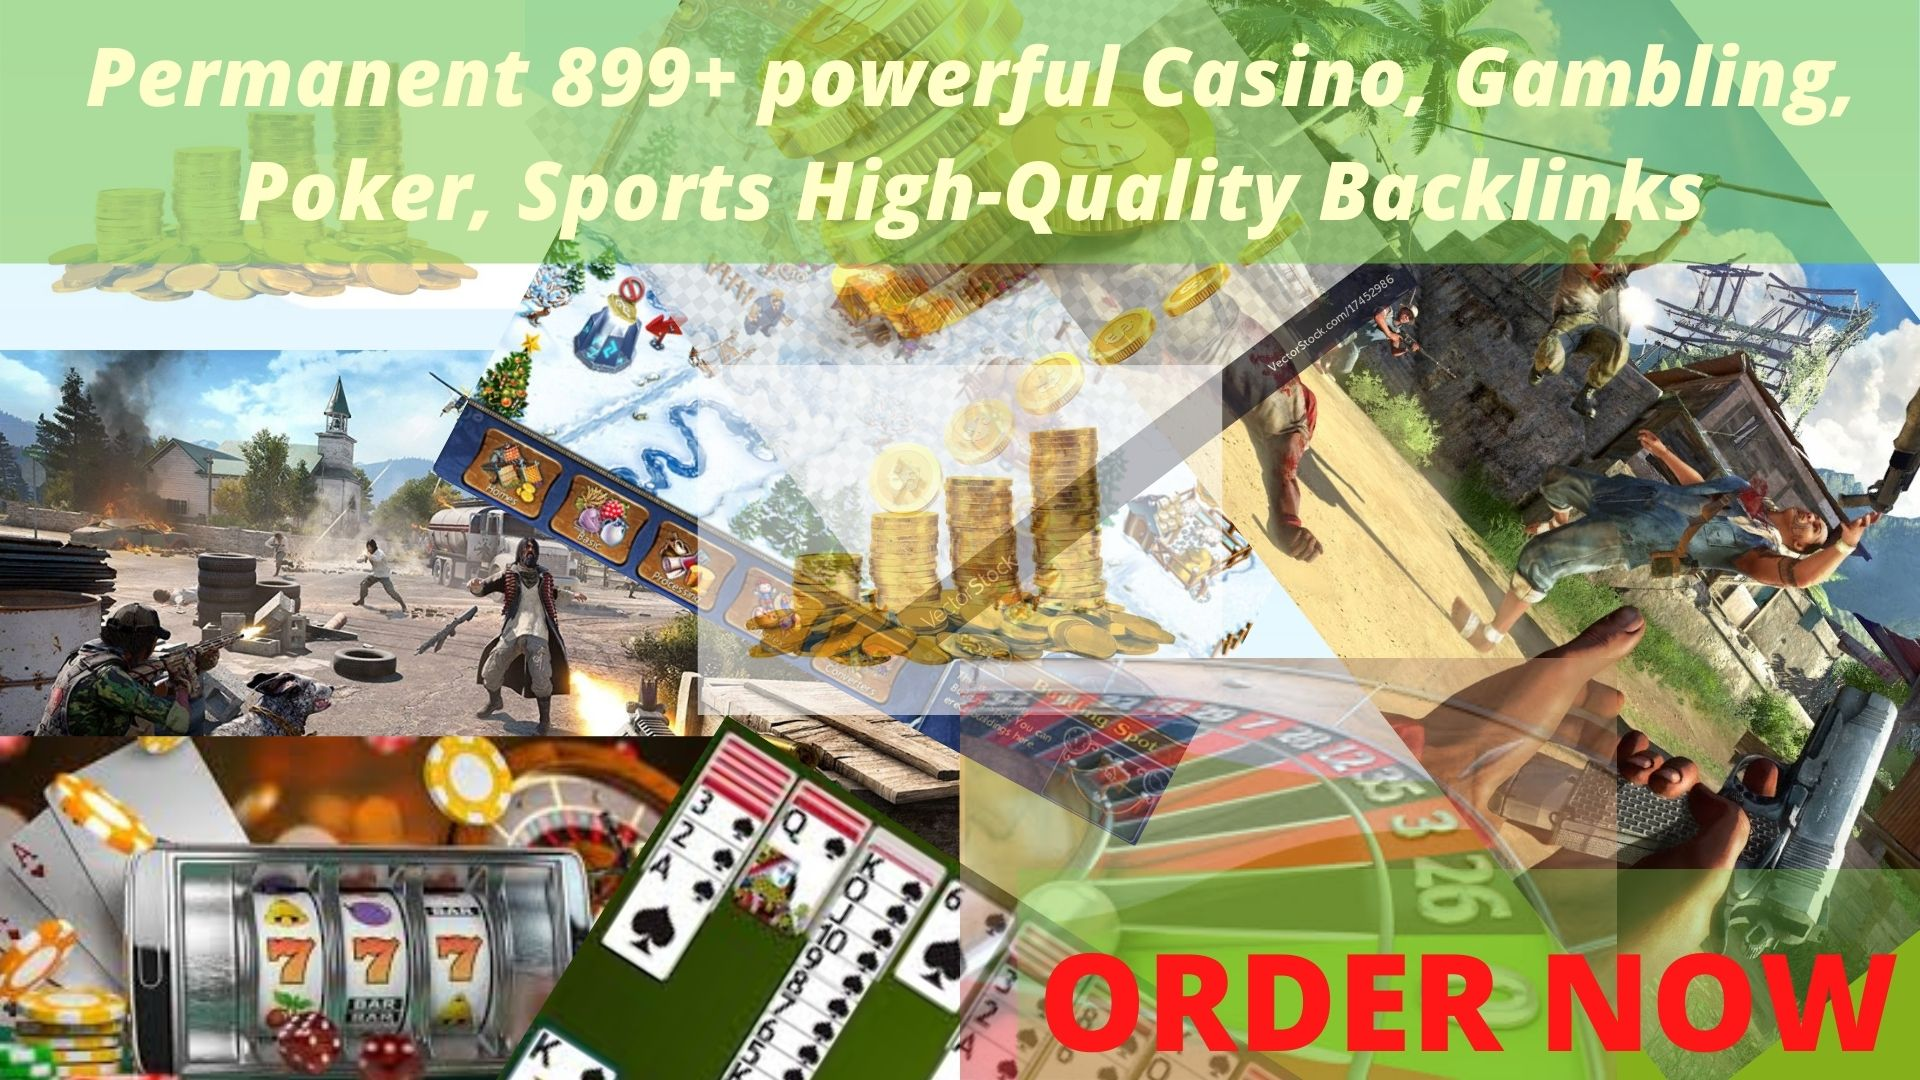 Get powerful Permanent 899+ powerful Casino,  Gambling,  Poker,  Sports High-Quality Backlinks.